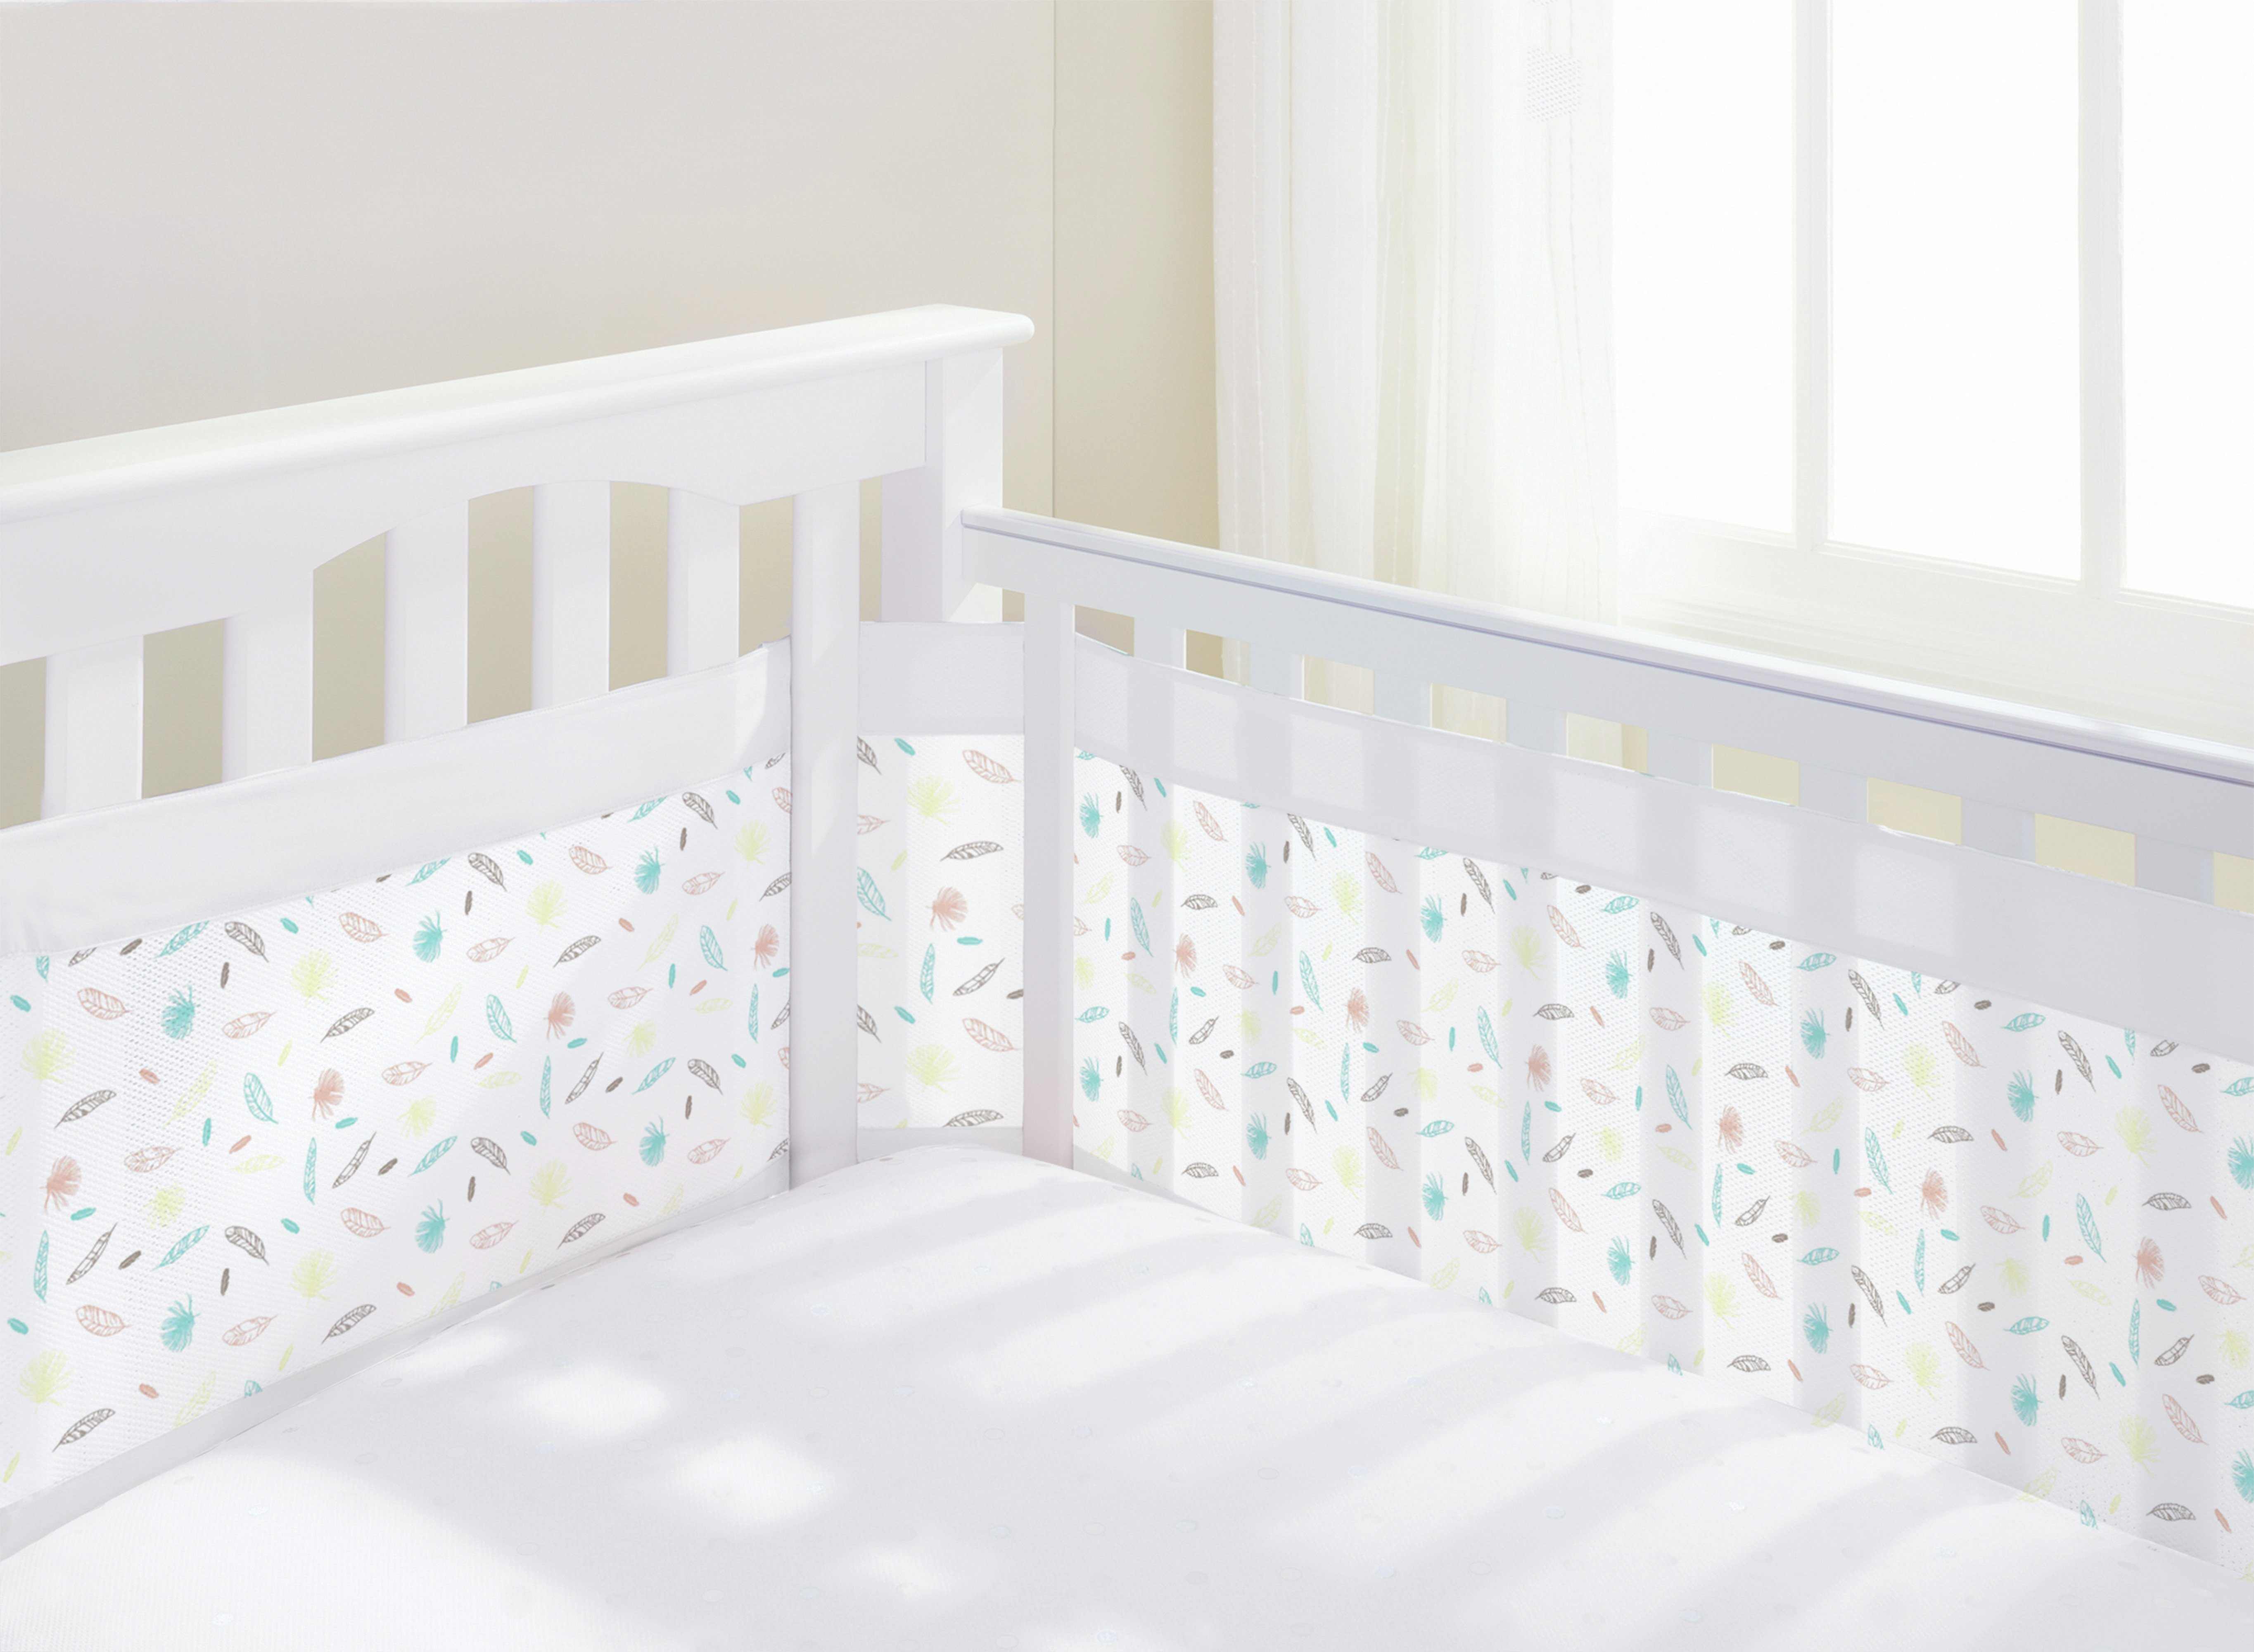 Image of BreathableBaby AirflowBaby Marabou Mesh Cot Liner - 4 Sided.